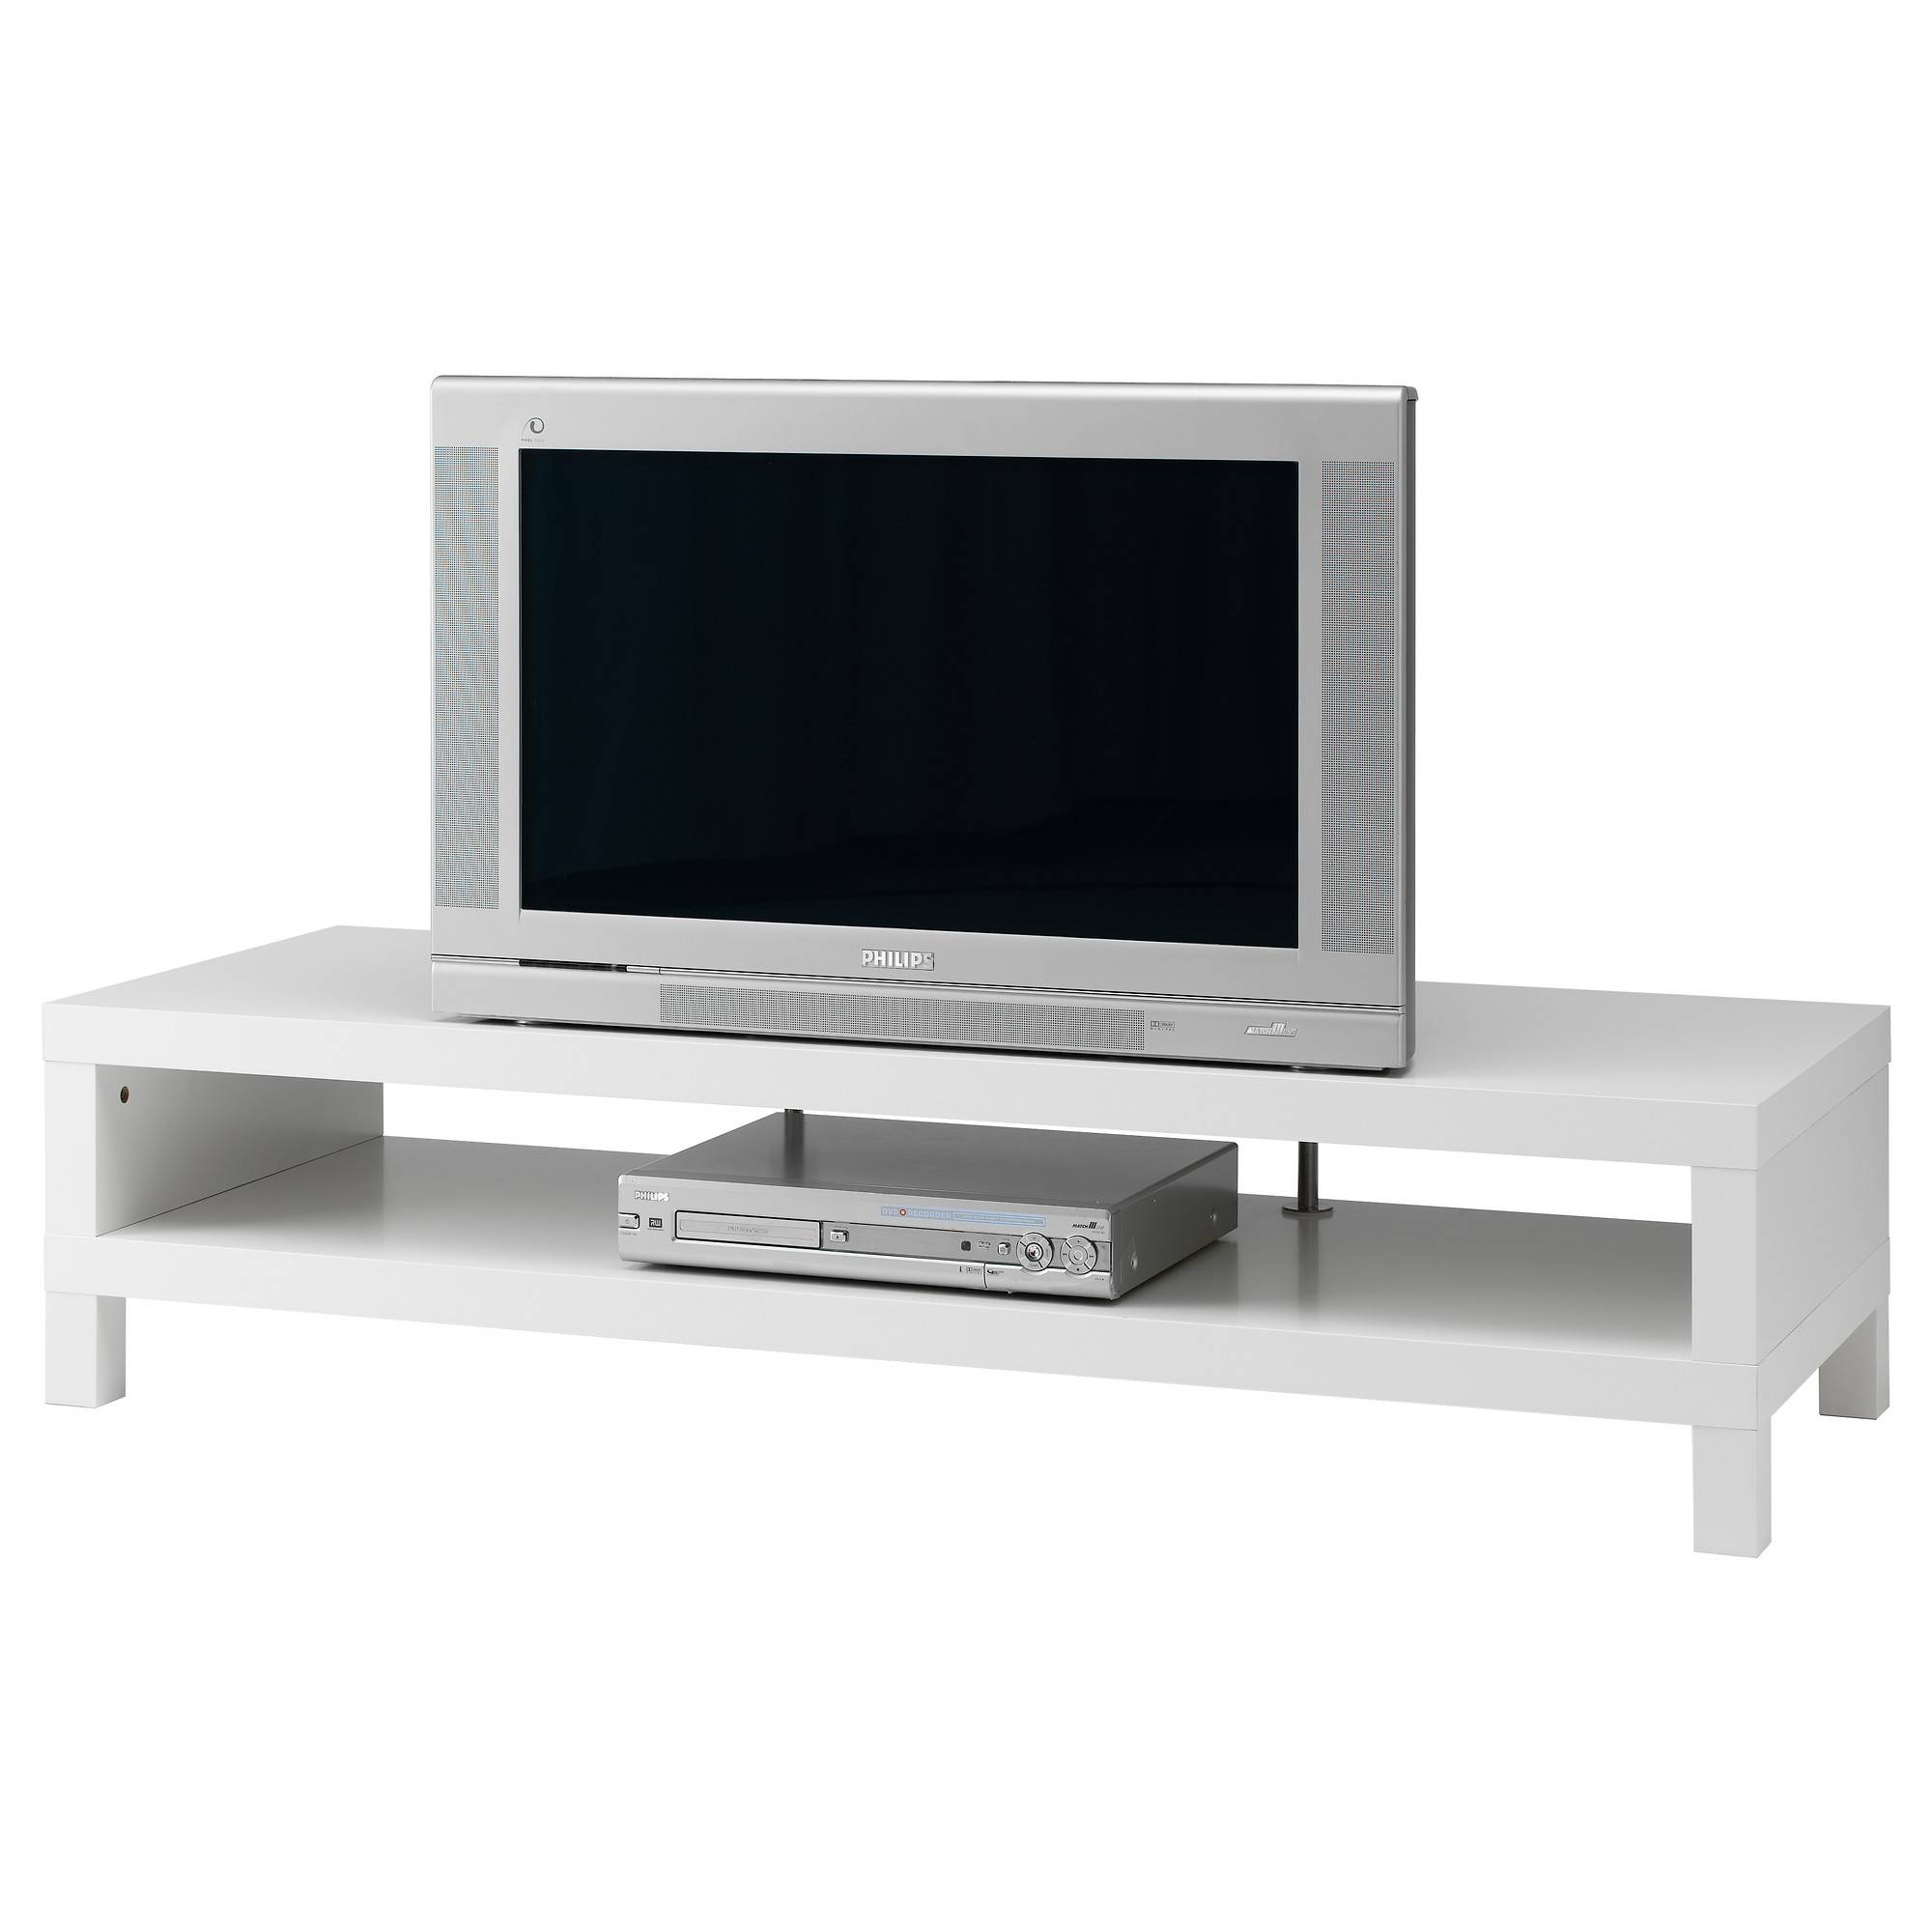 Lack Tv Bench White 149X55 Cm - Ikea with Corner Tv Unit White Gloss (Image 5 of 15)